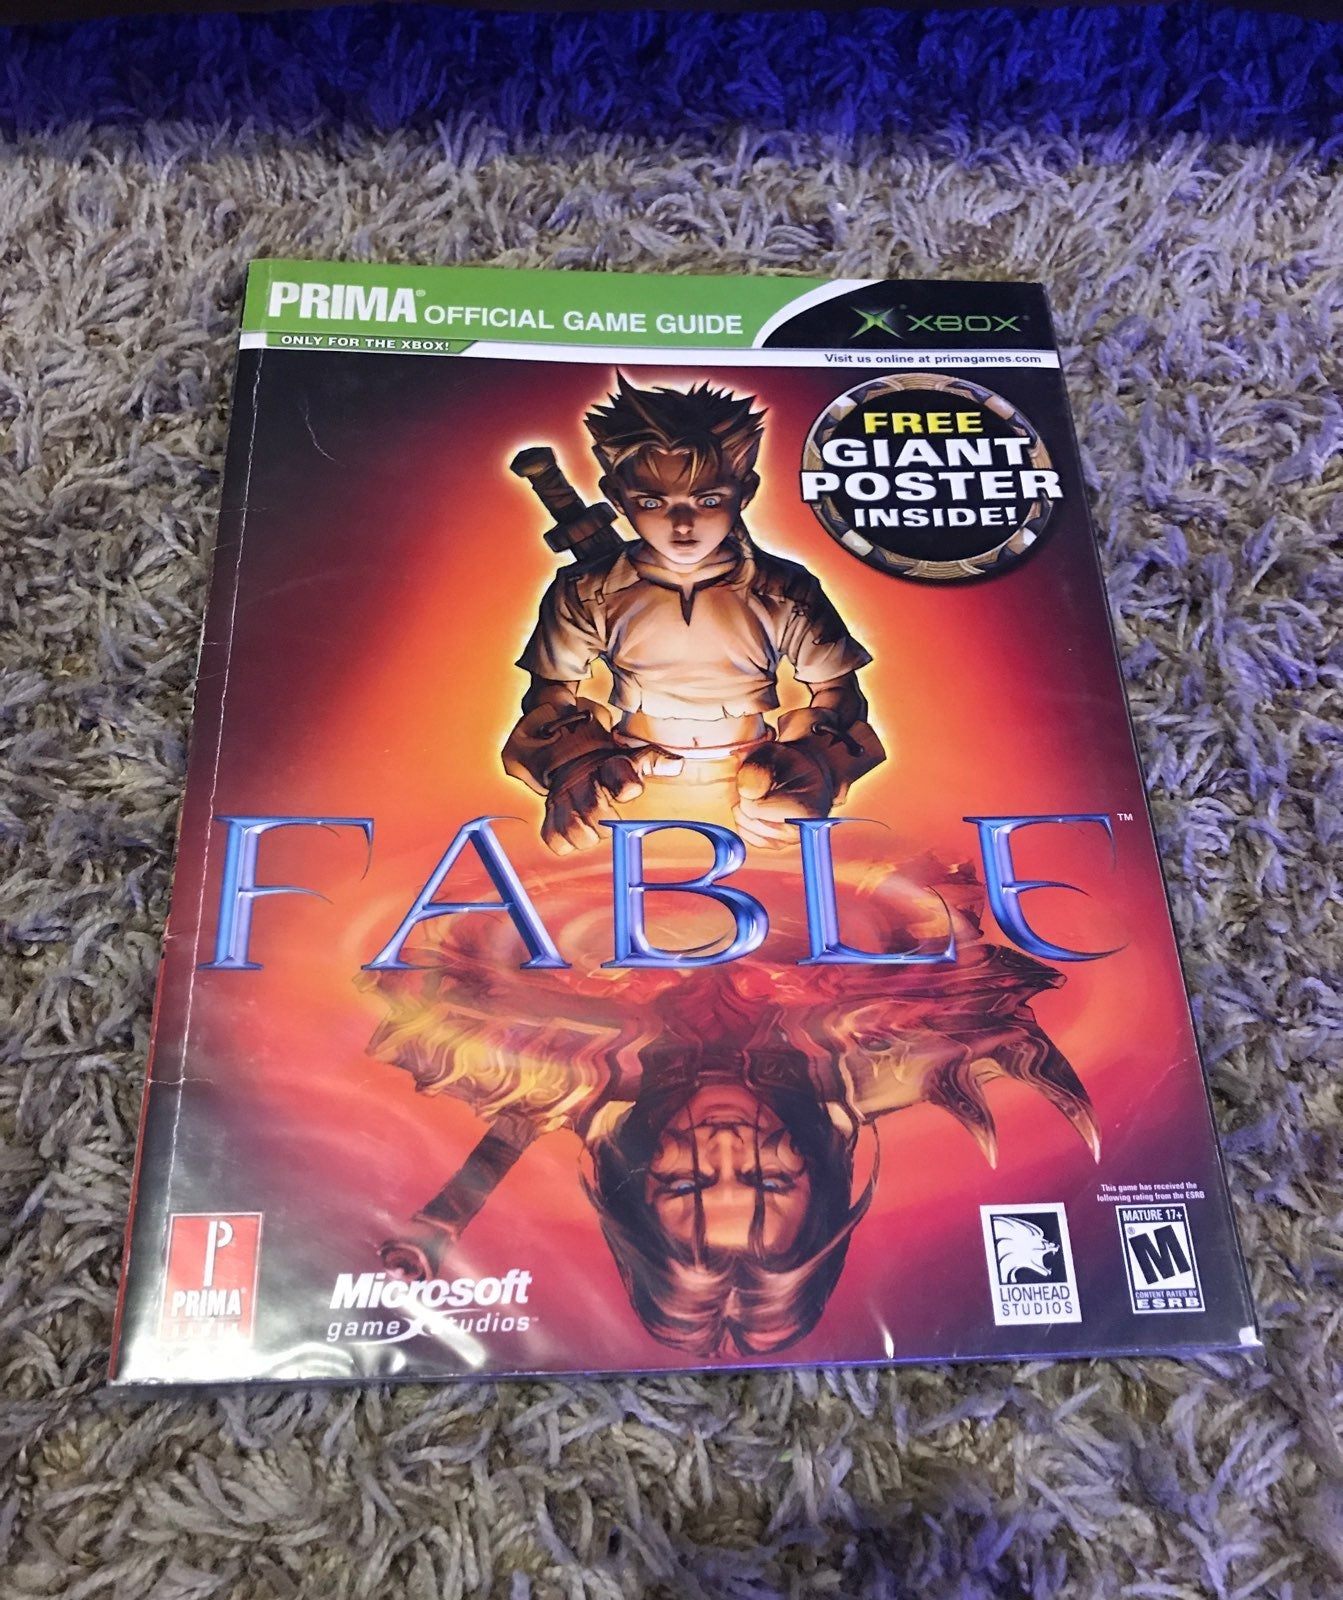 Fable (2004) on Xbox Guide